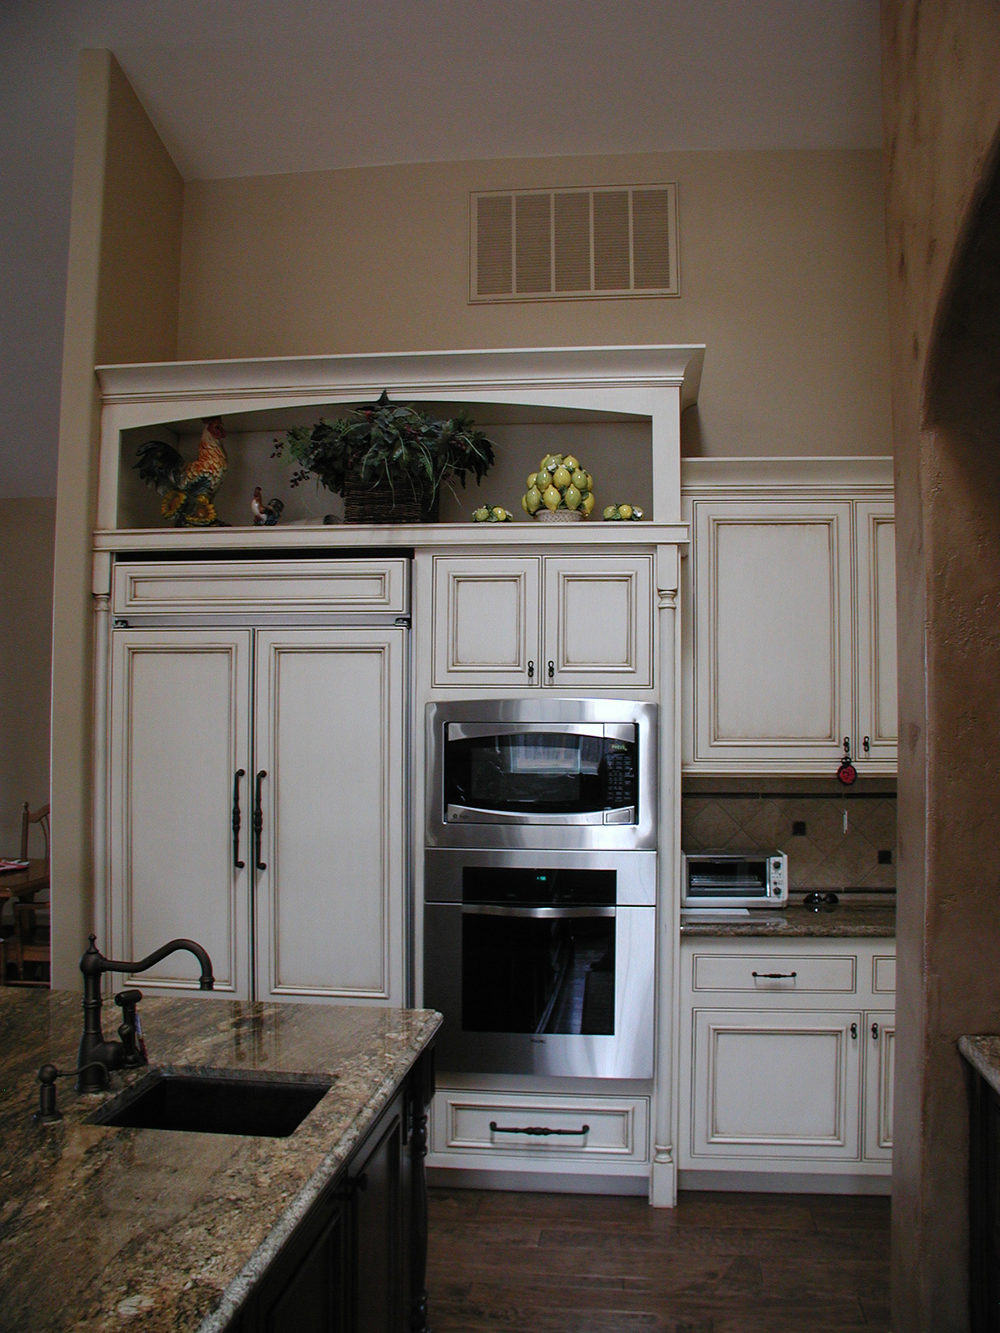 Dutton kitchen 03.JPG